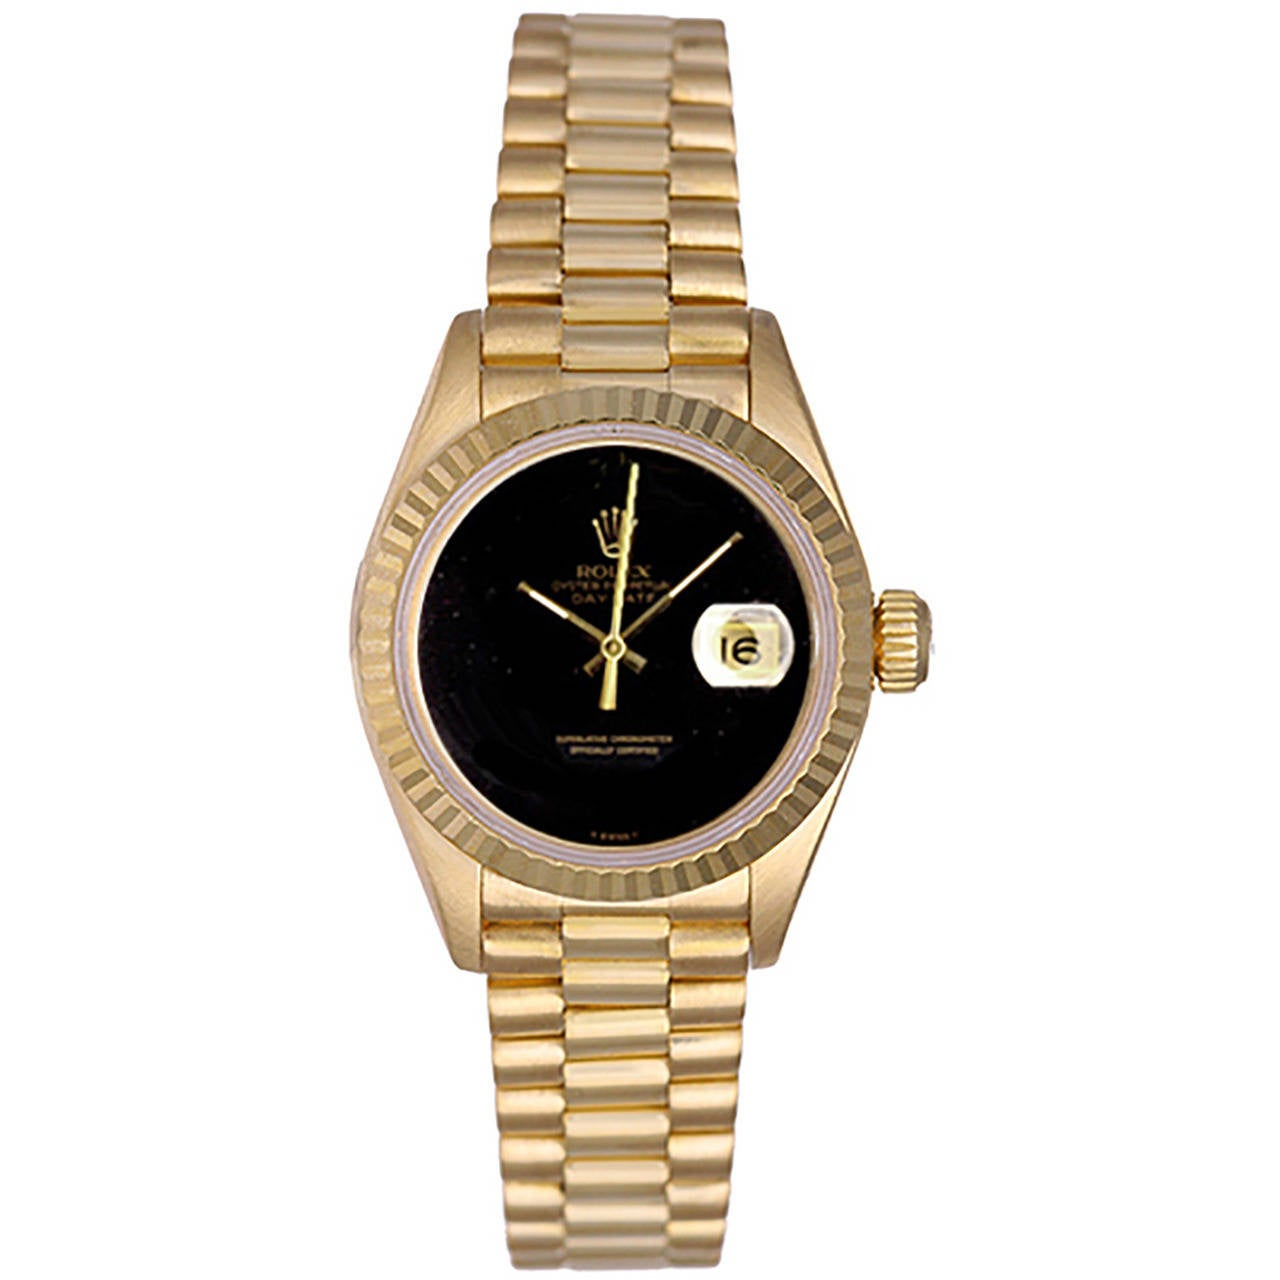 Rolex Lady's Yellow Gold President Wristwatch Ref 69178 For Sale